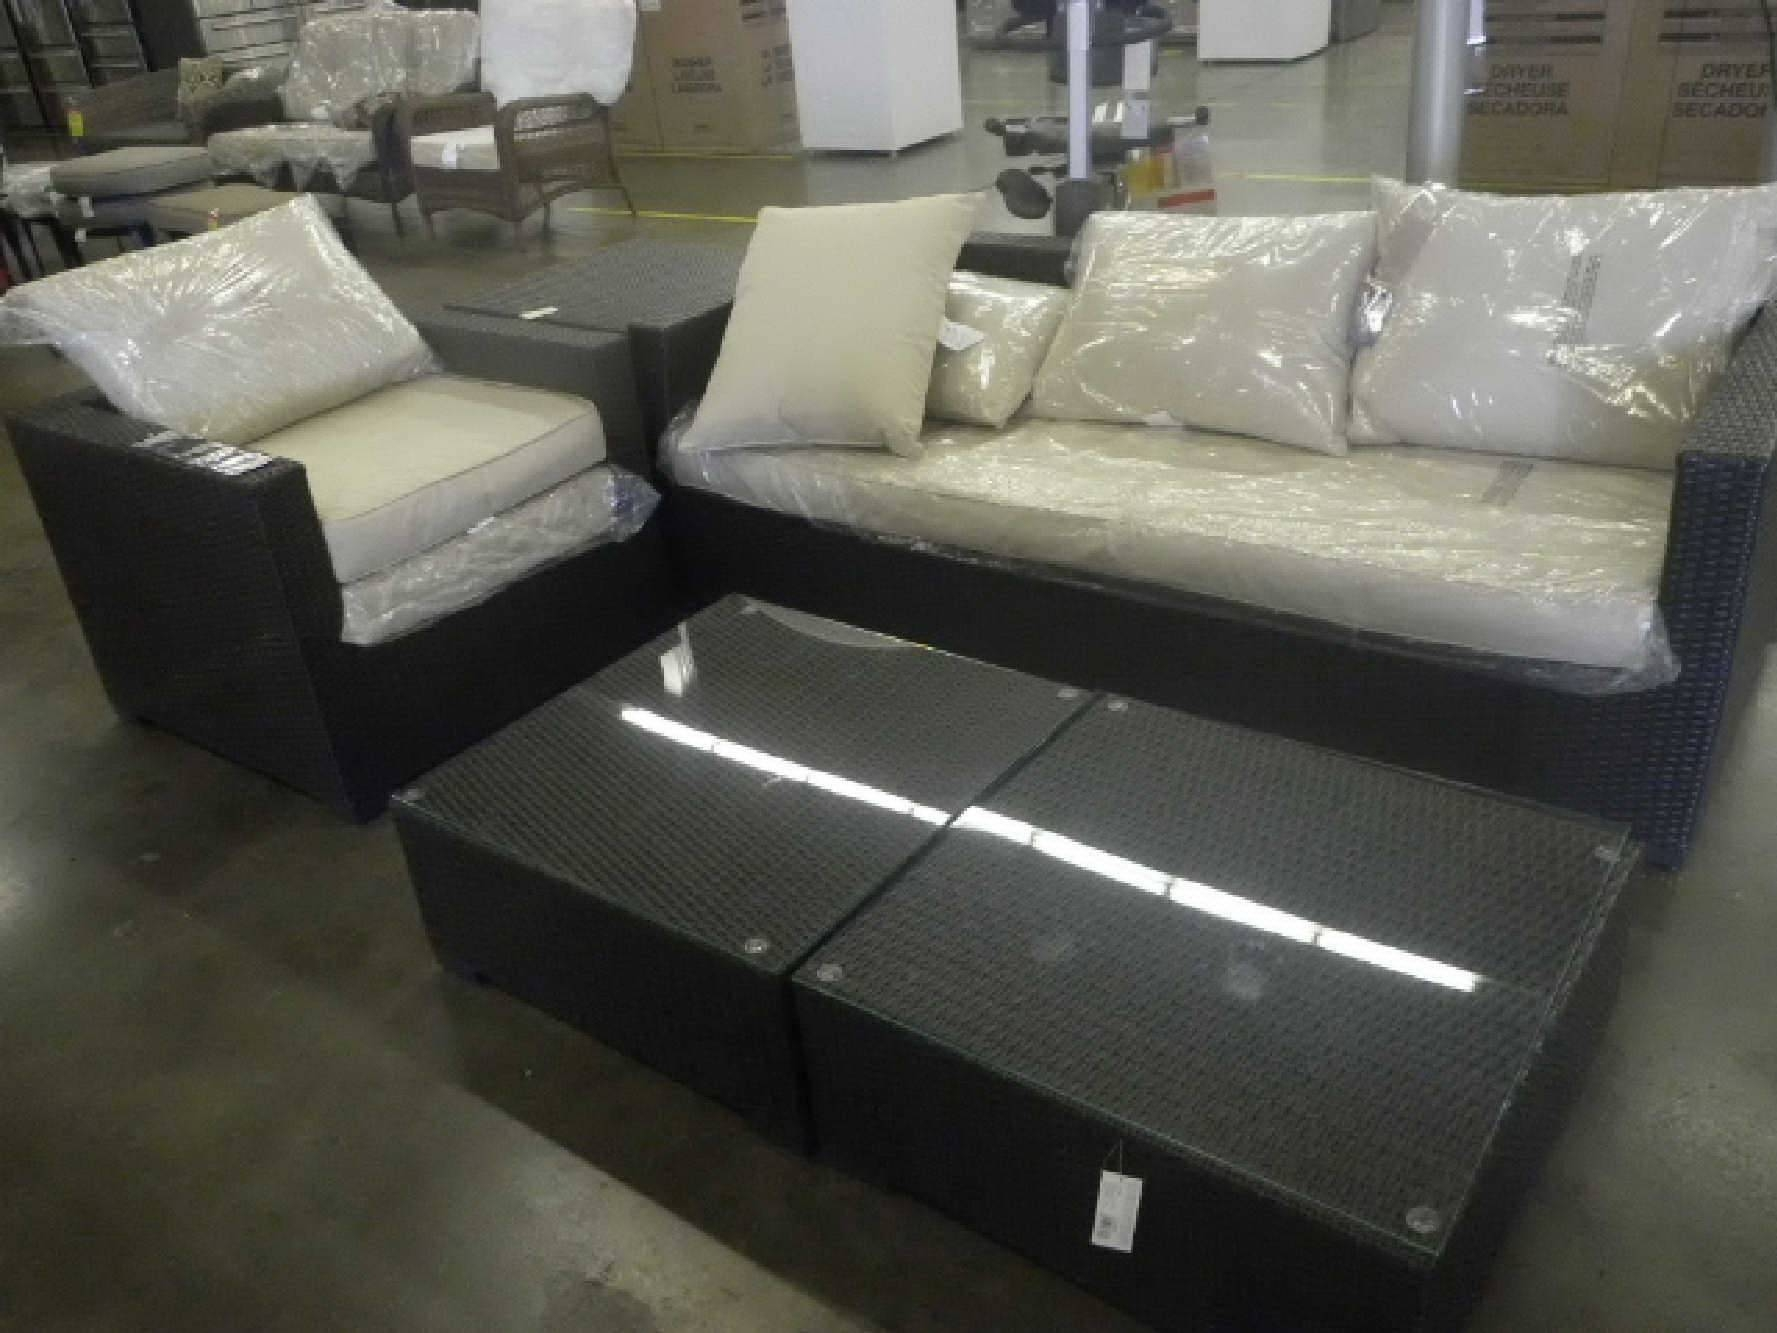 75 Awesome Sears Outlet Sofas Home Design | Hoozoo inside Florence Grand Sofas (Image 4 of 25)